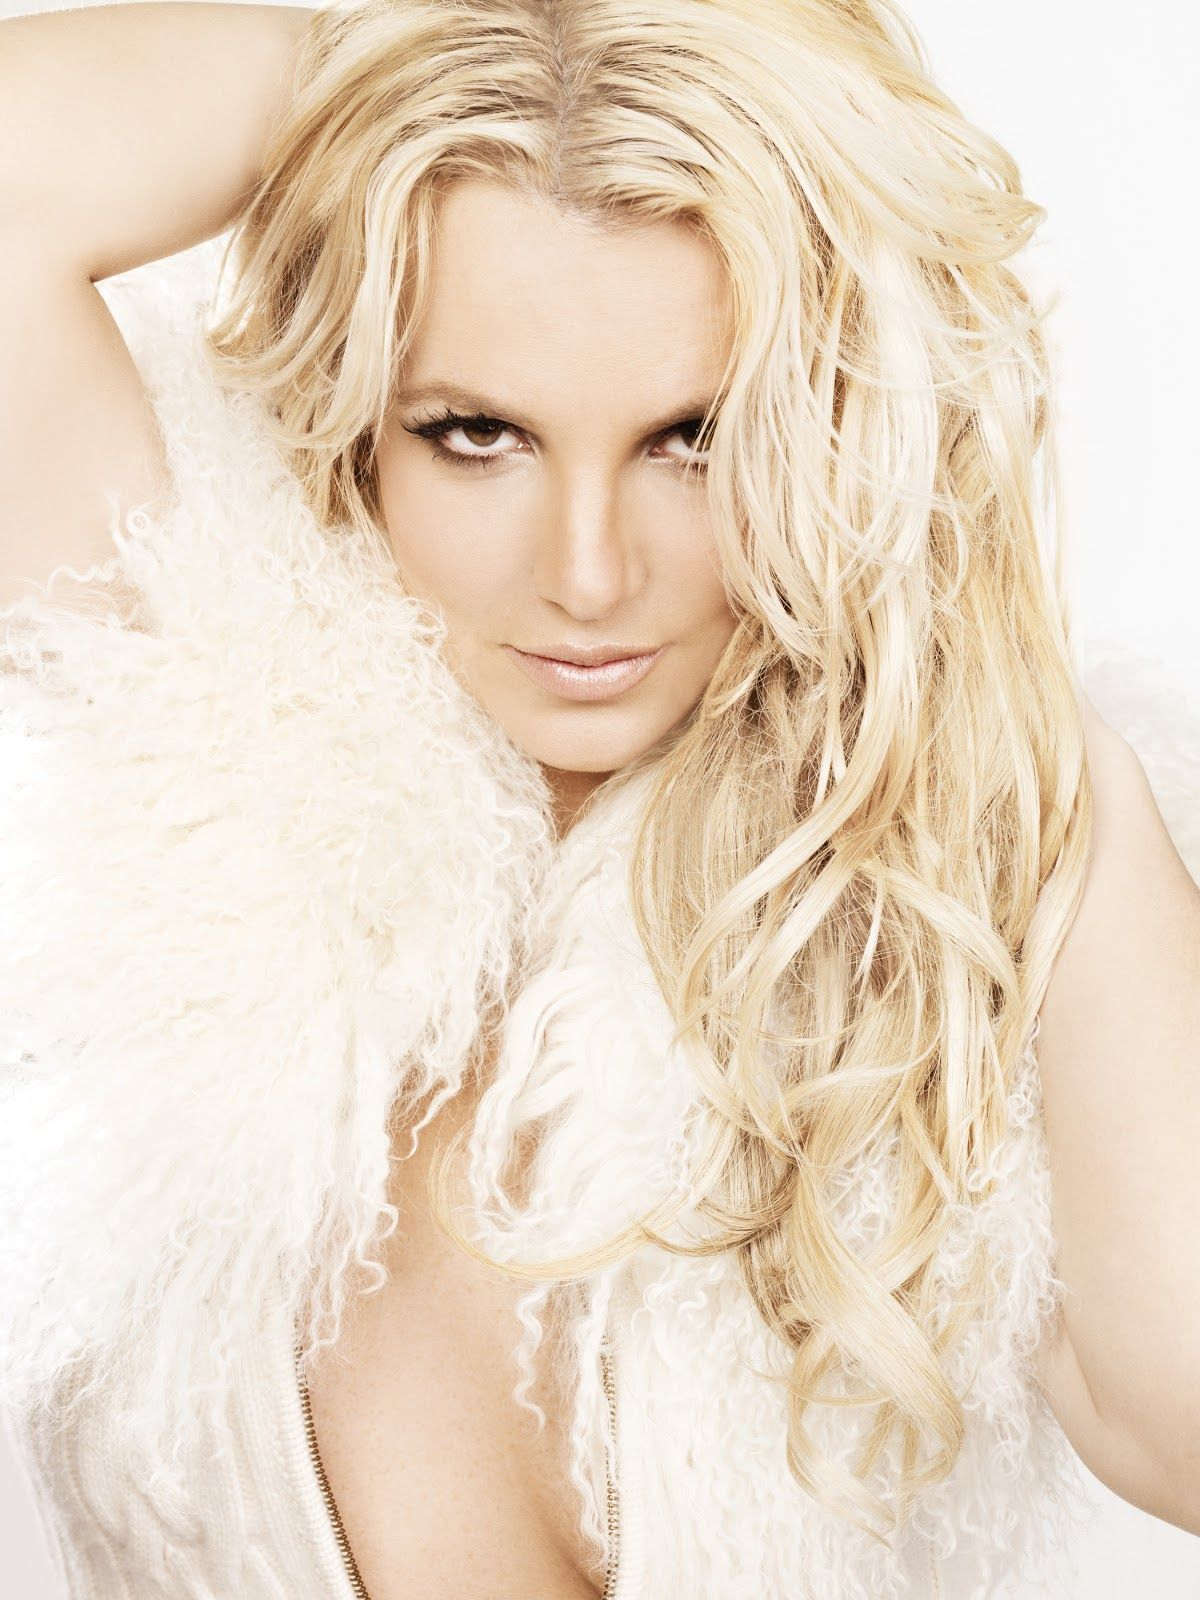 Mujeres virgeness britney spears desnuda ultimas fotos 75